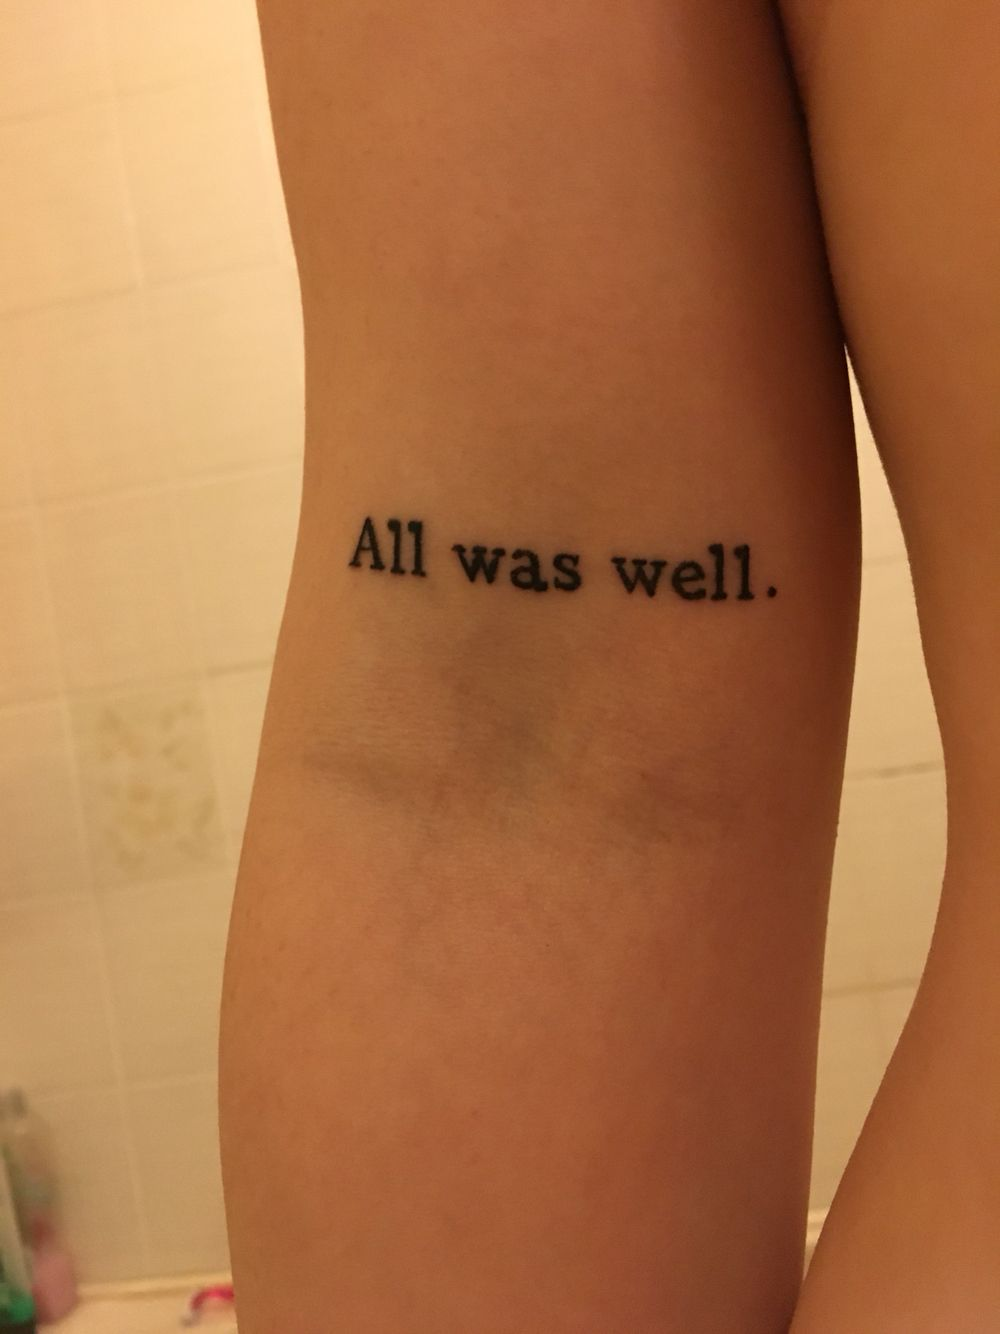 Harry Potter Tattoo All Was Well Done At Asgard In Winchester Harry Potter Tattoo Small All Is Well Tattoos